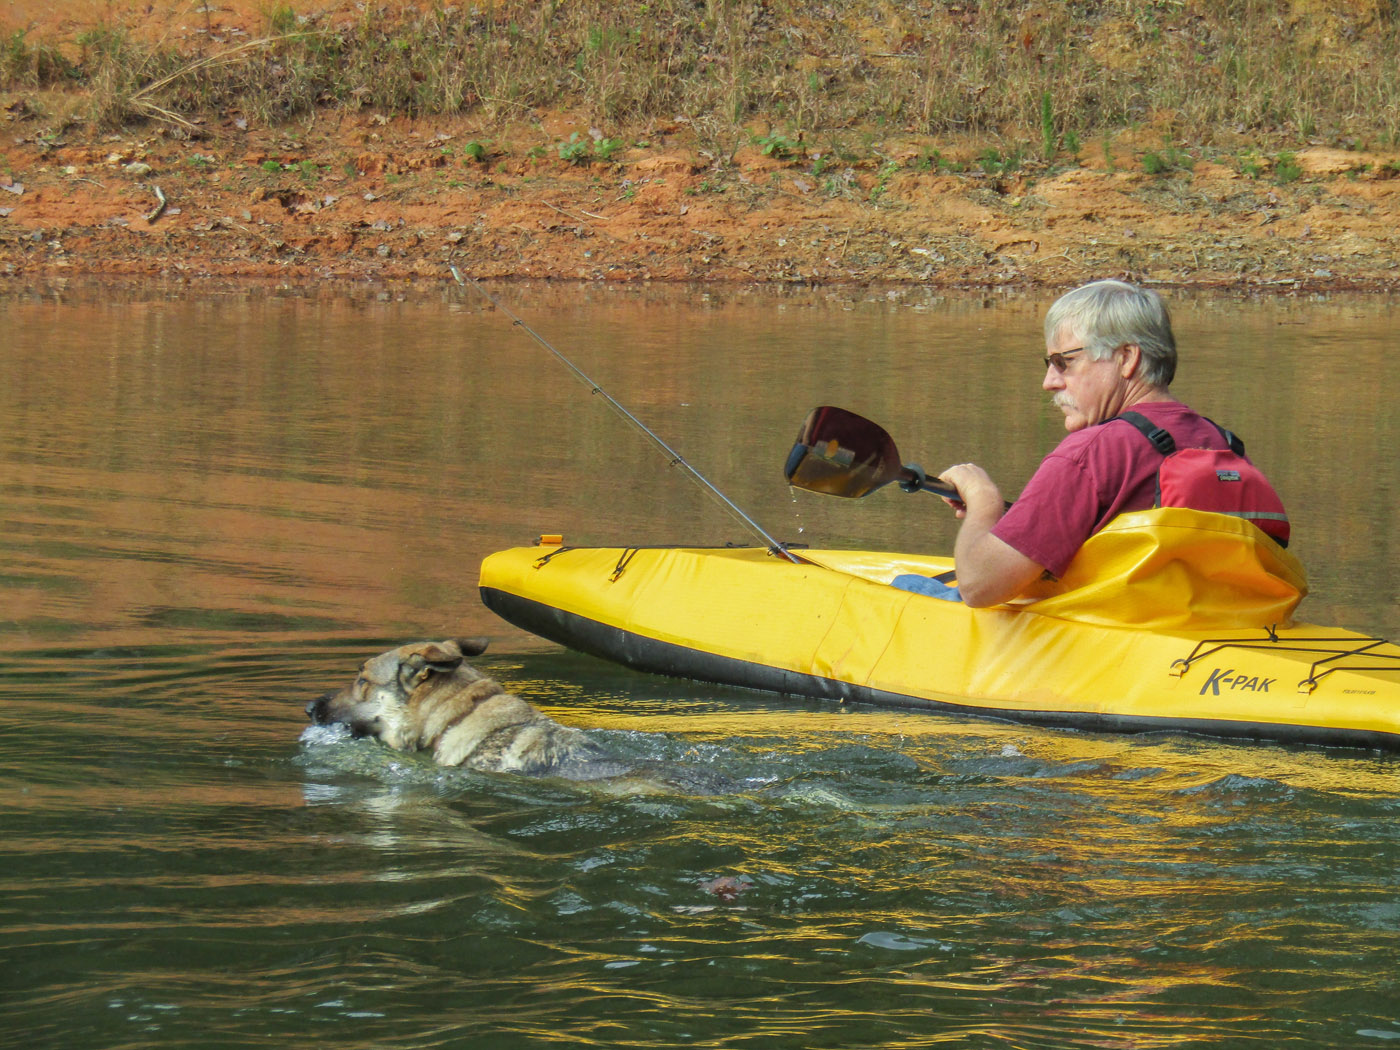 Pete paddling with his dog, Nahla.